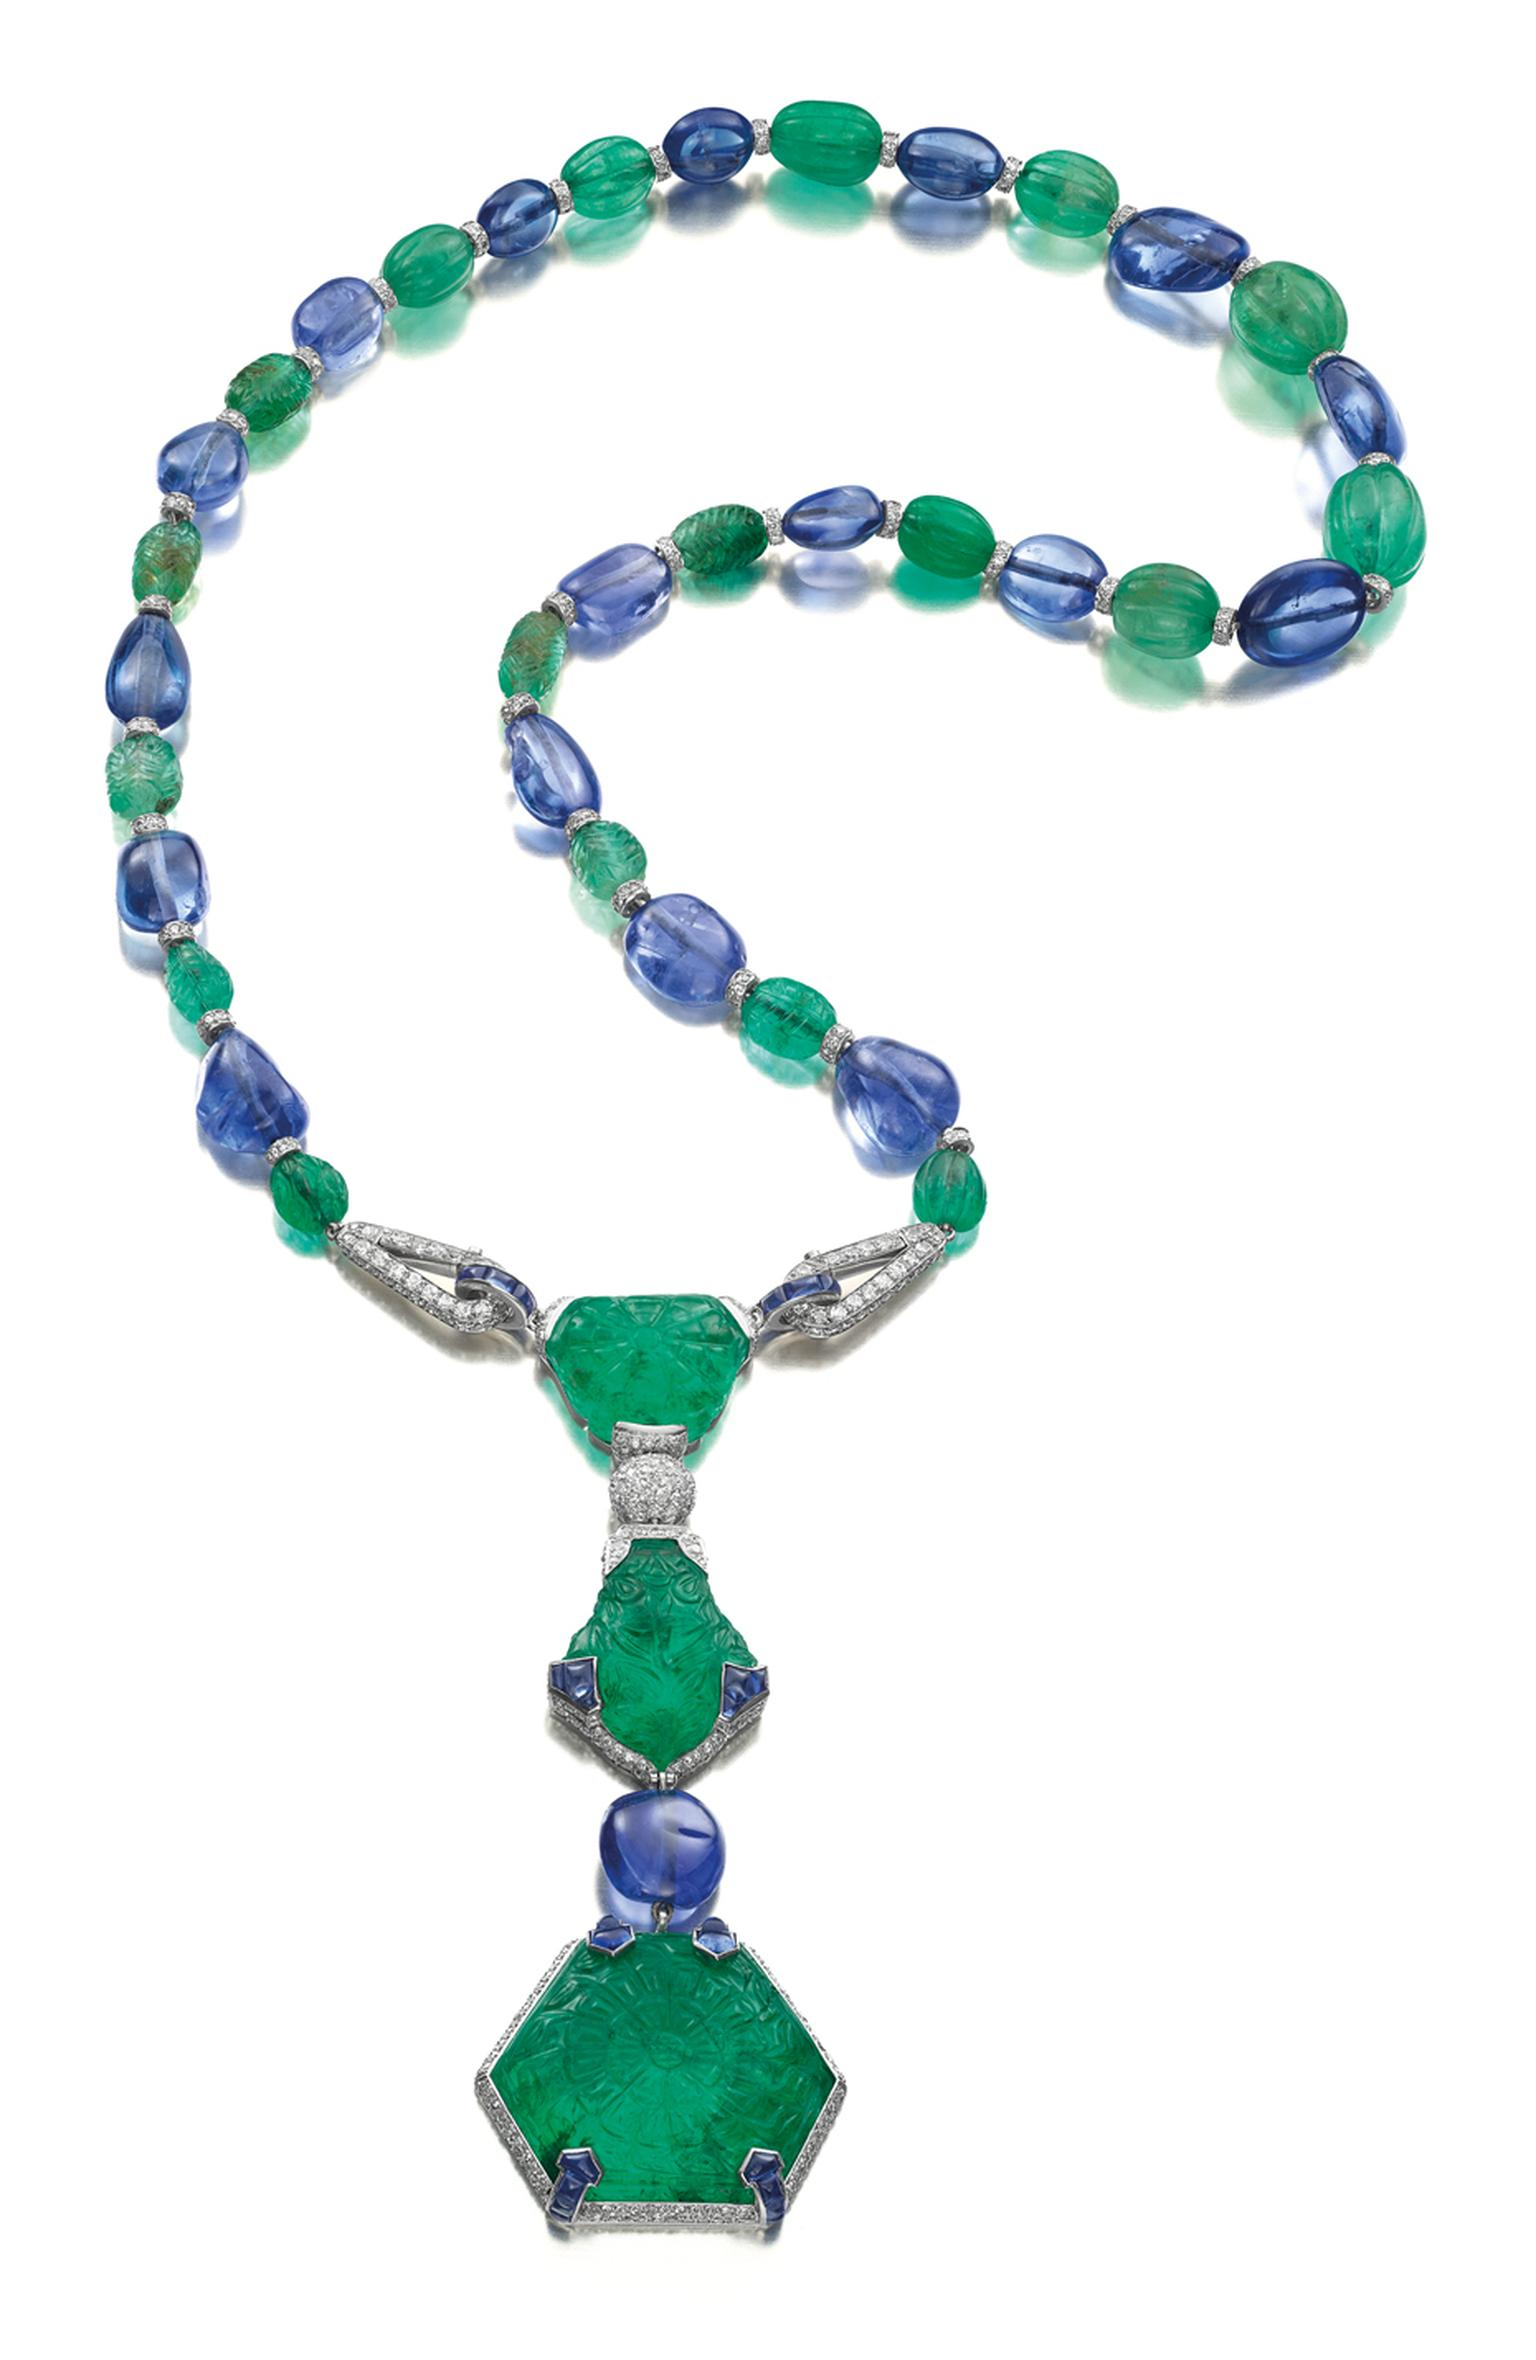 Cartier necklace dating from 1925 in platinum, featuring diamonds, sapphires and emeralds